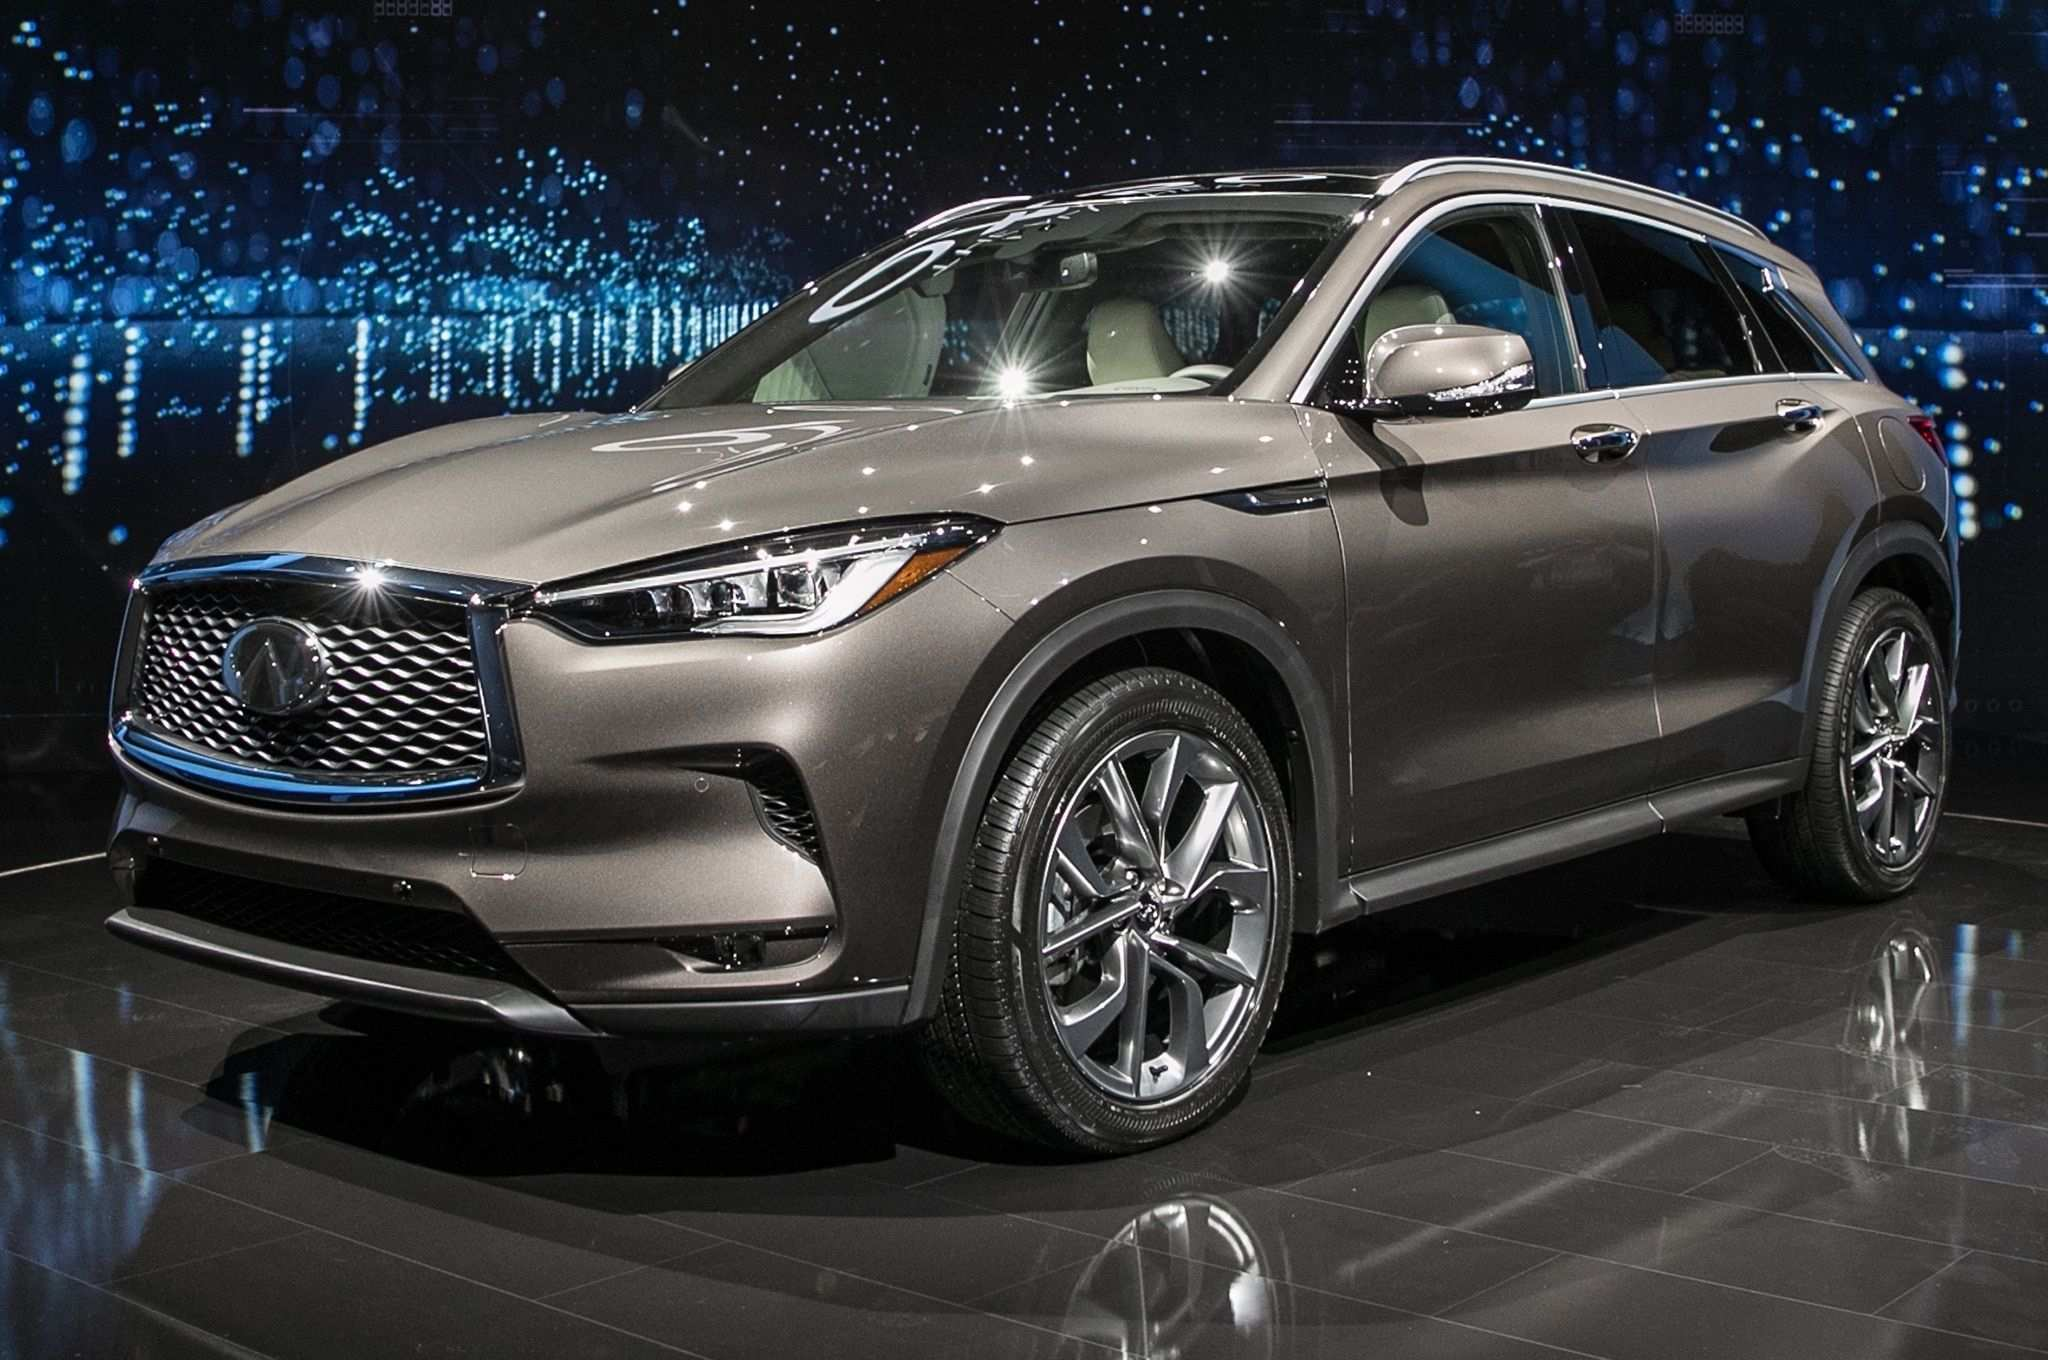 72 All New 2019 Infiniti Qx50 Wiki Review And Release Date